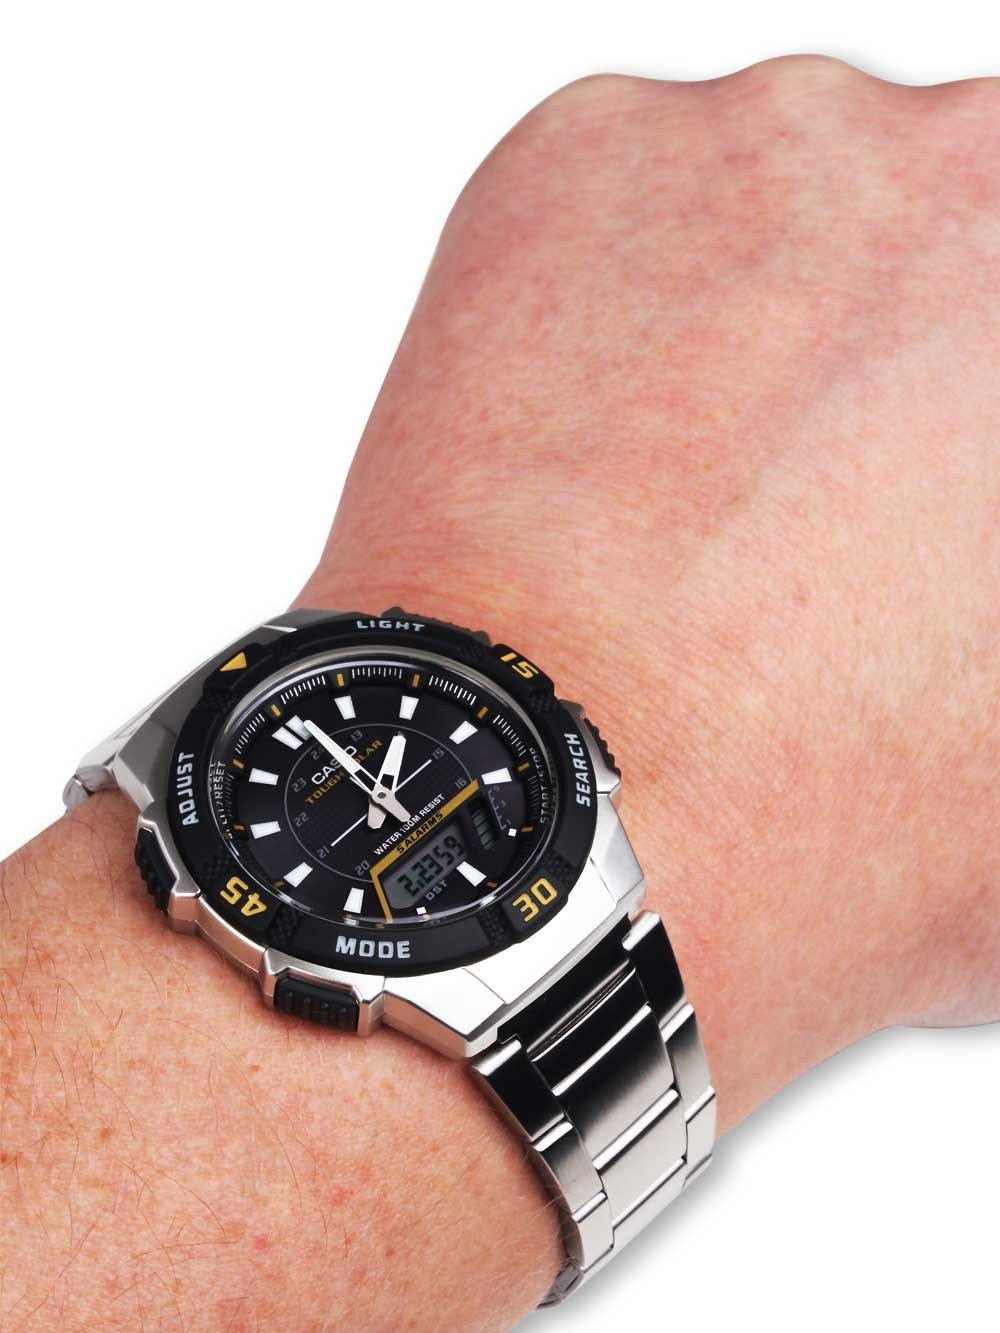 CASIO AQ-S800WD-1EVEF Collection 42mm 10ATM